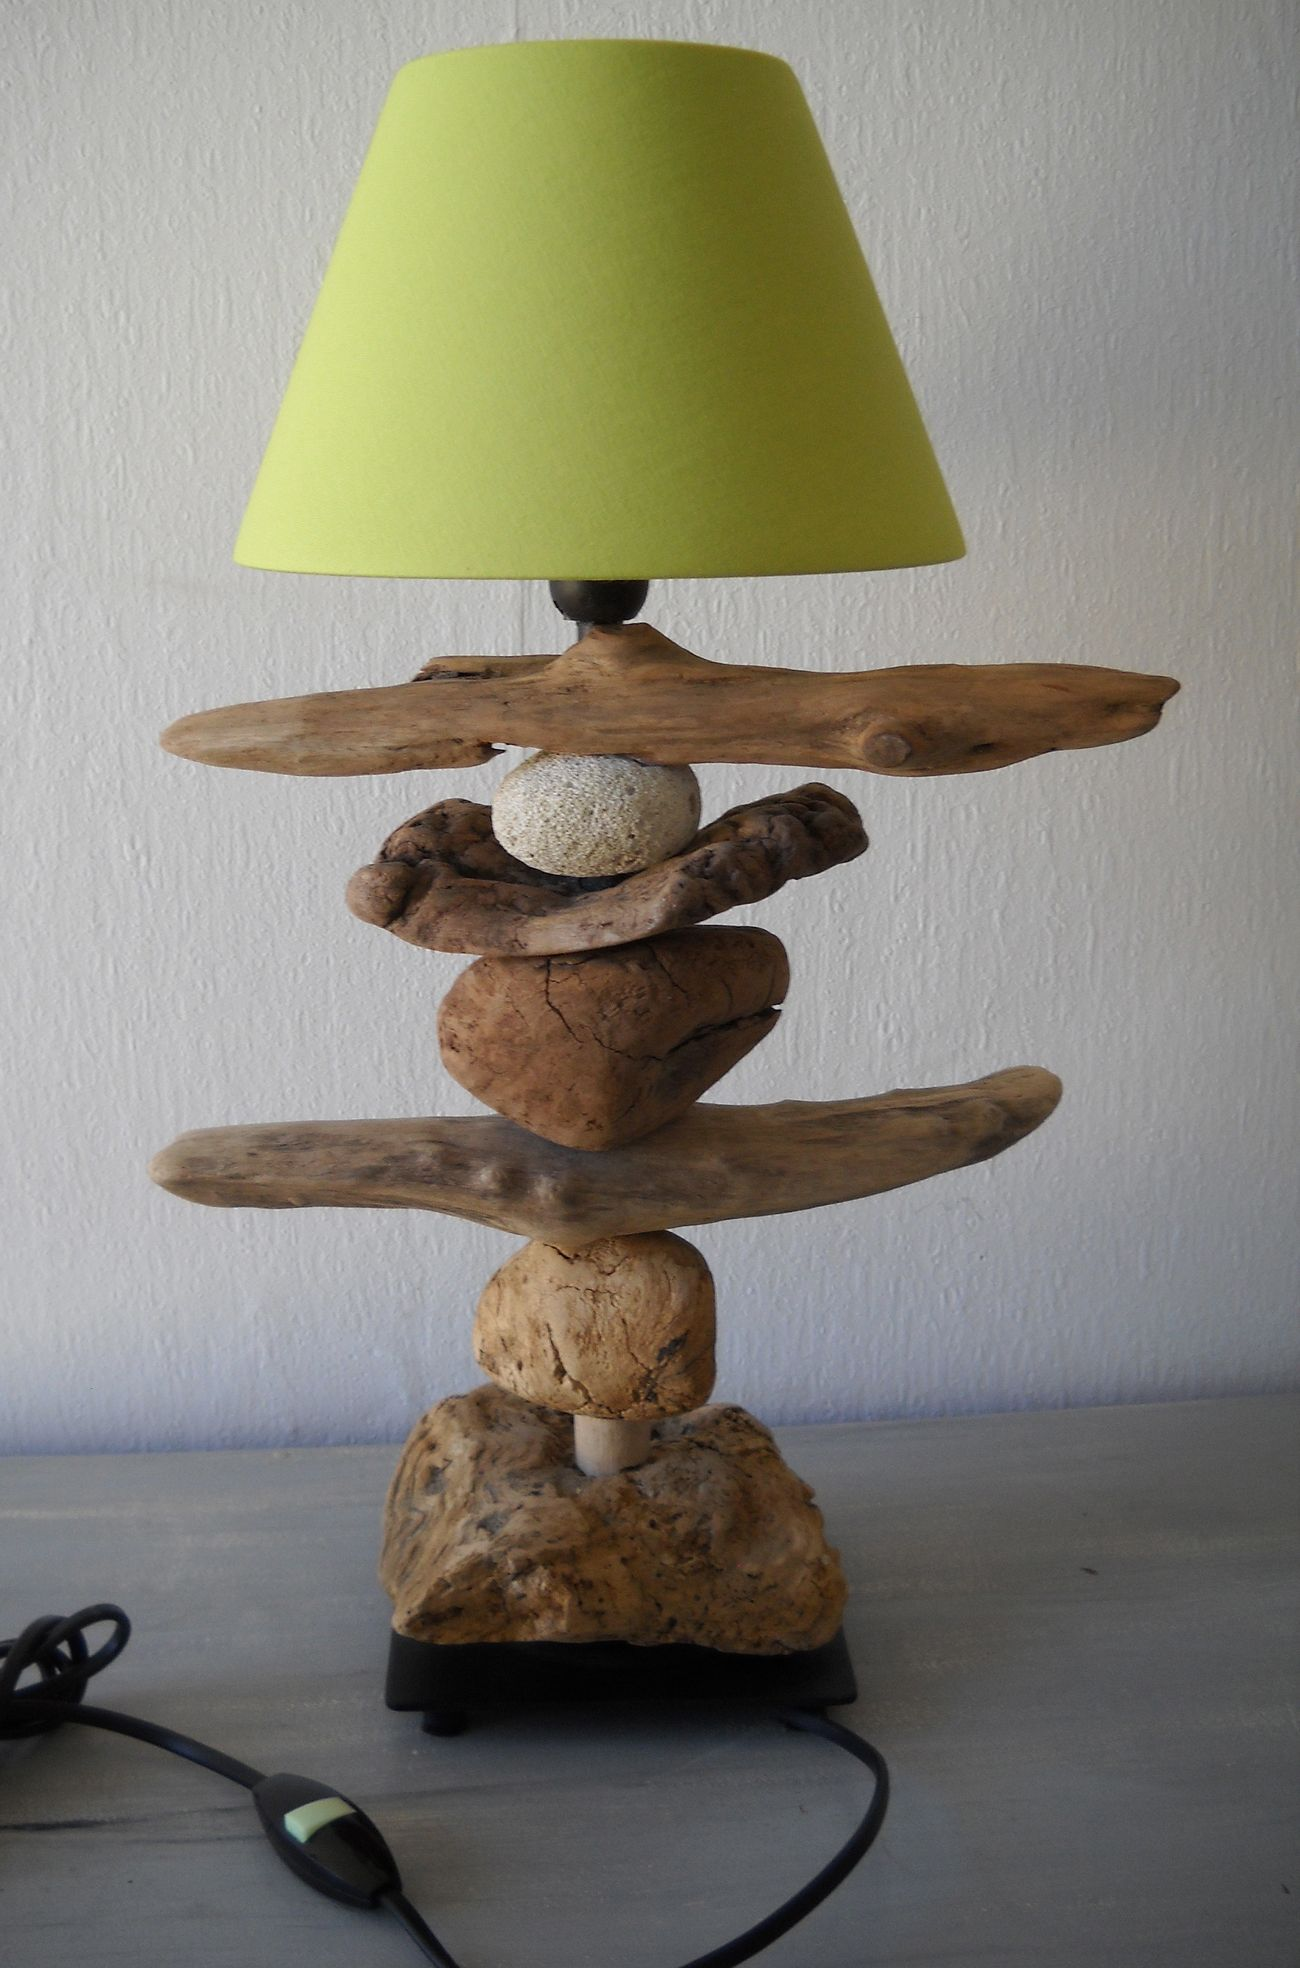 Customiser une lampe ikea hamma en bois flottes for Lampe en bois flotte creation